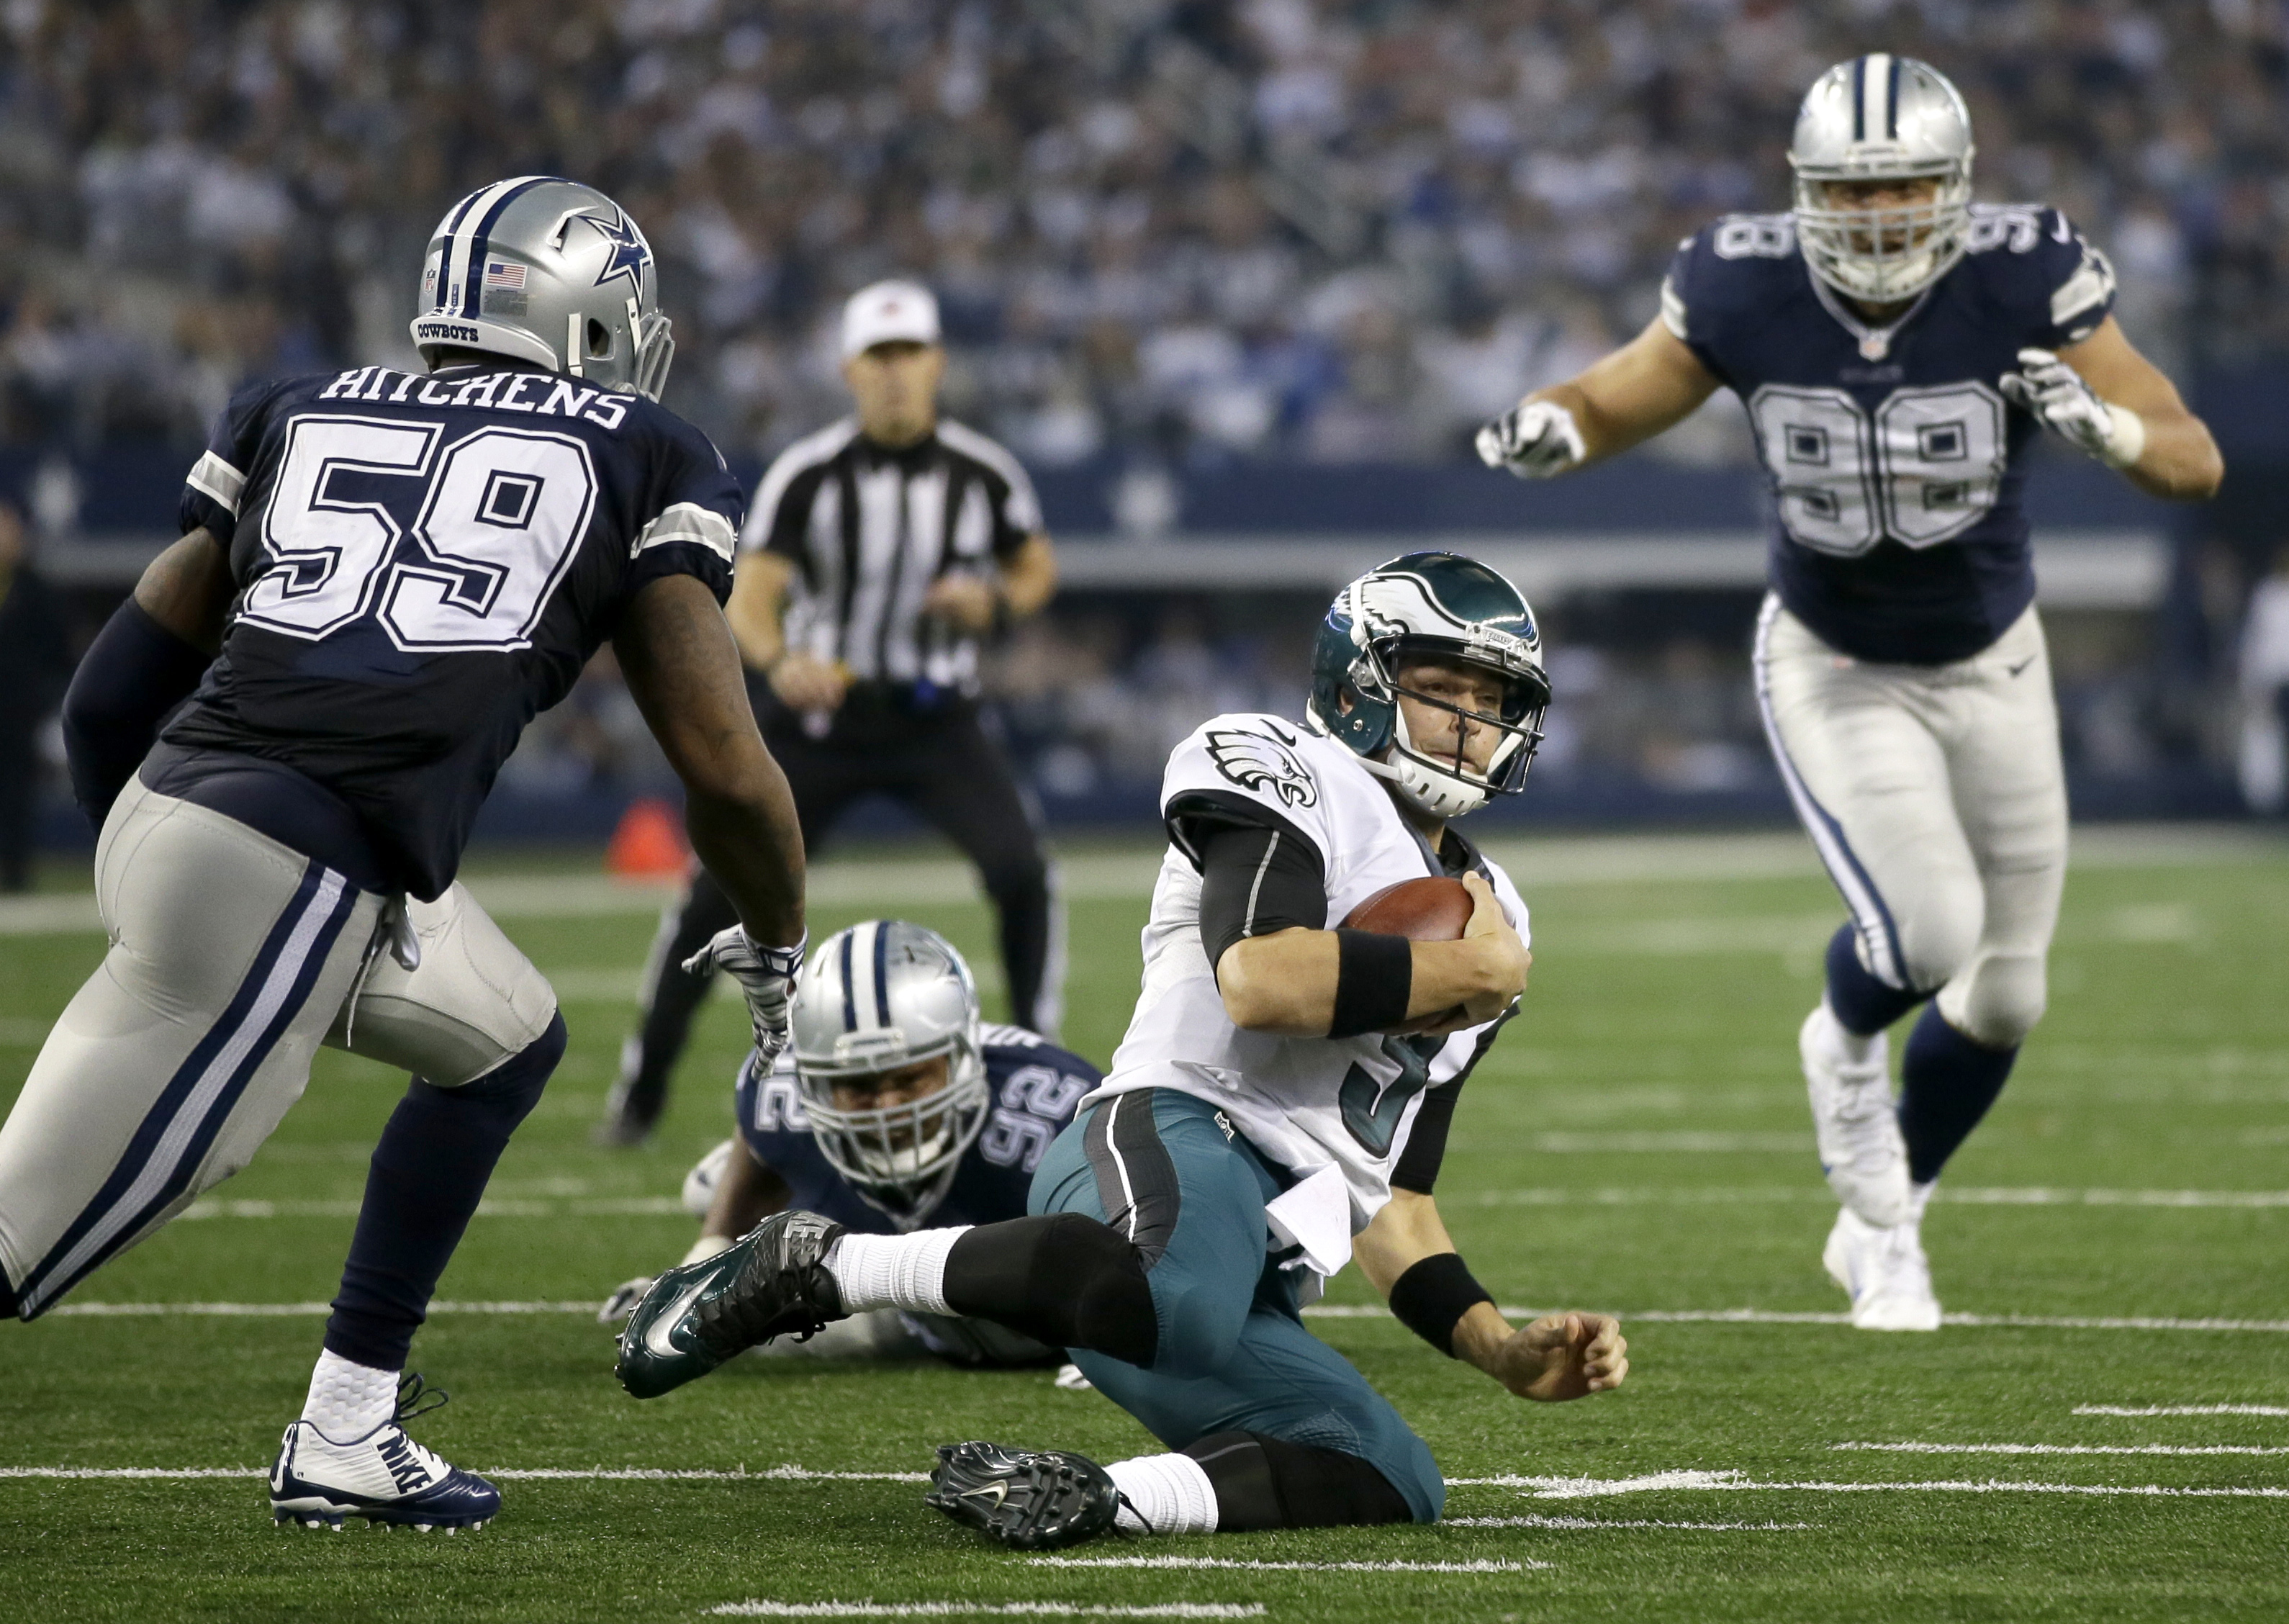 Cowboys Headlines - Mark Sanchez: More Than Just A Villain, Cowboys Are Playing It Smart 2